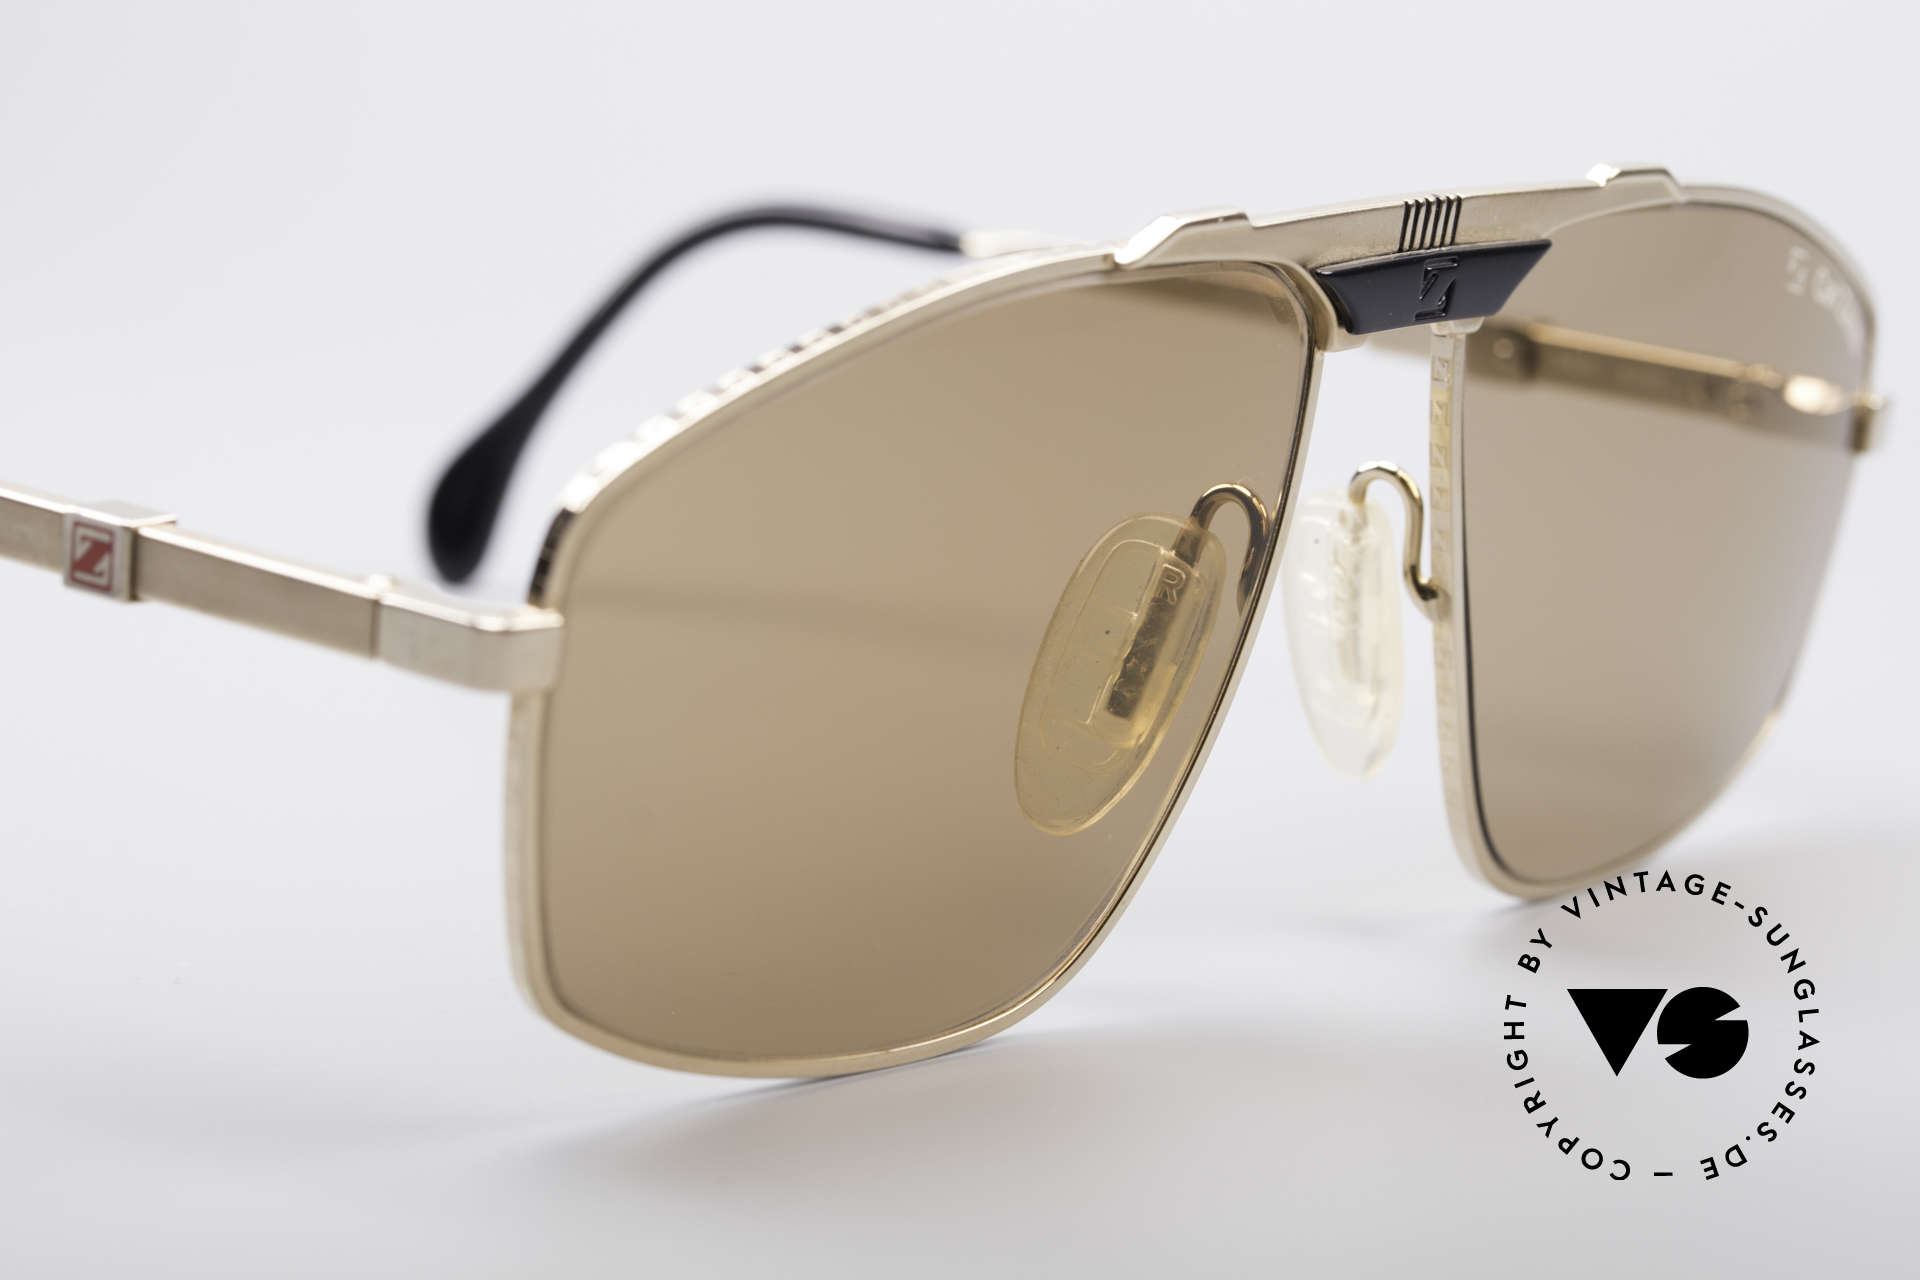 Zeiss 9925 True Gentlemen's 80's Shades, never worn (like all our vintage Zeiss 1980's eyewear), Made for Men